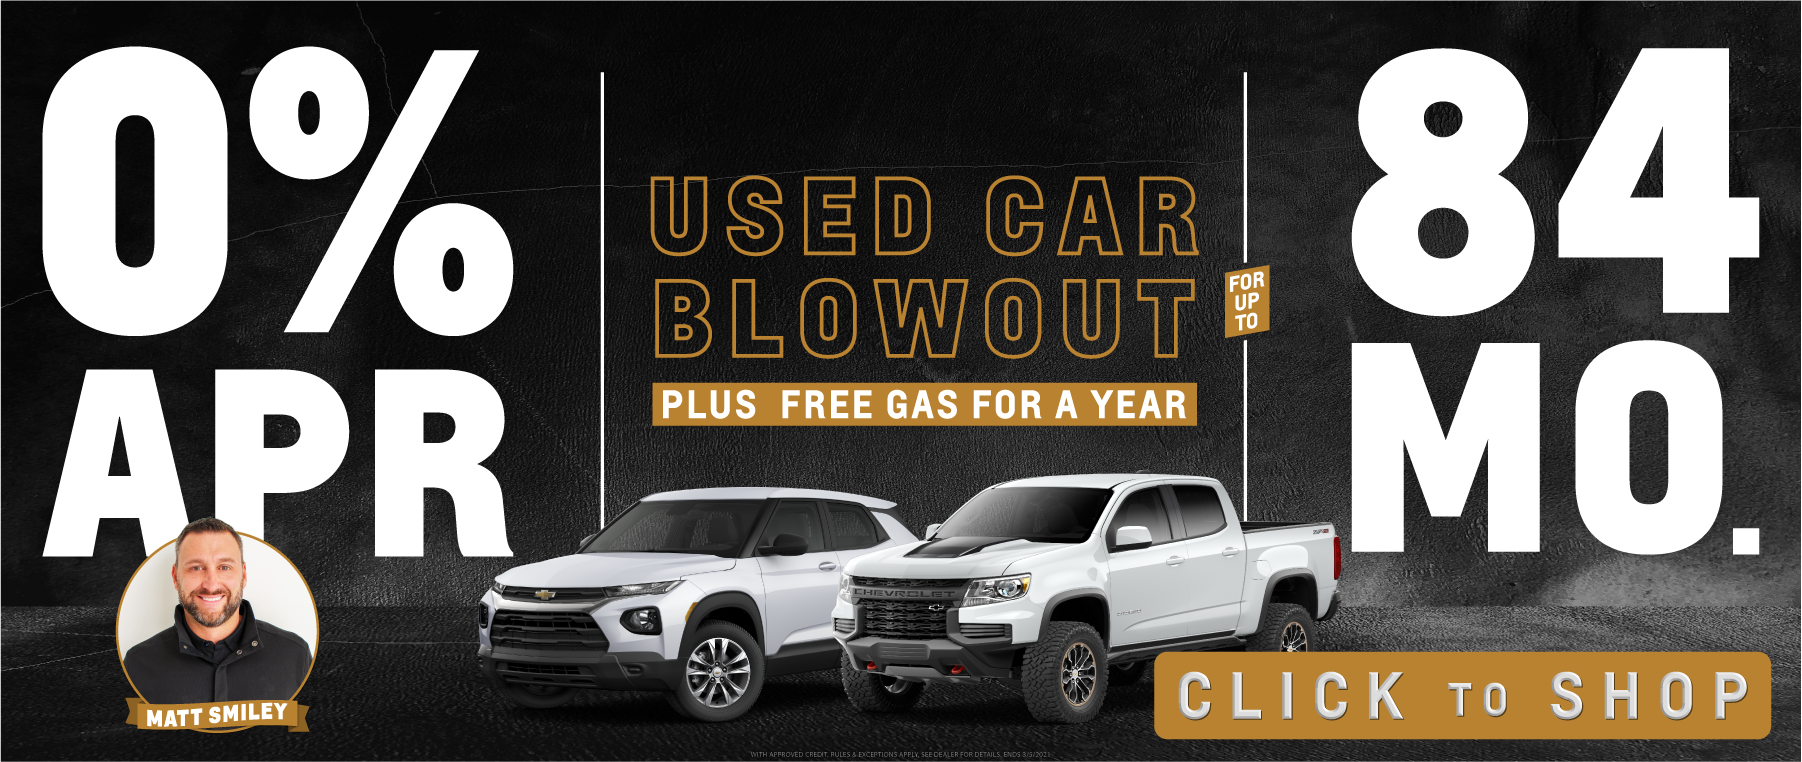 Used car blowout. 0% APR for up to 84 months.